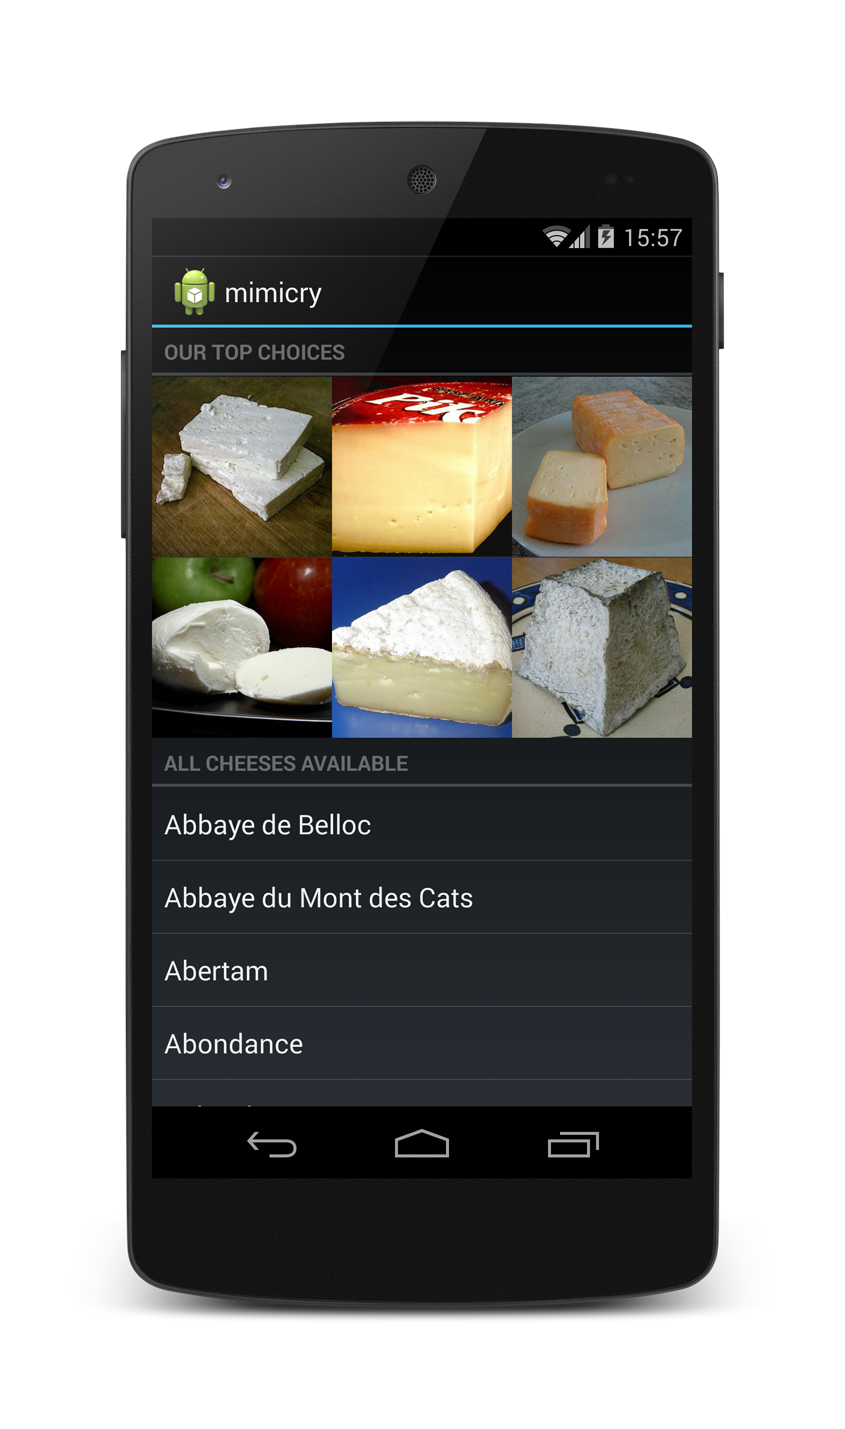 Screen shot of the mimicry-sample app